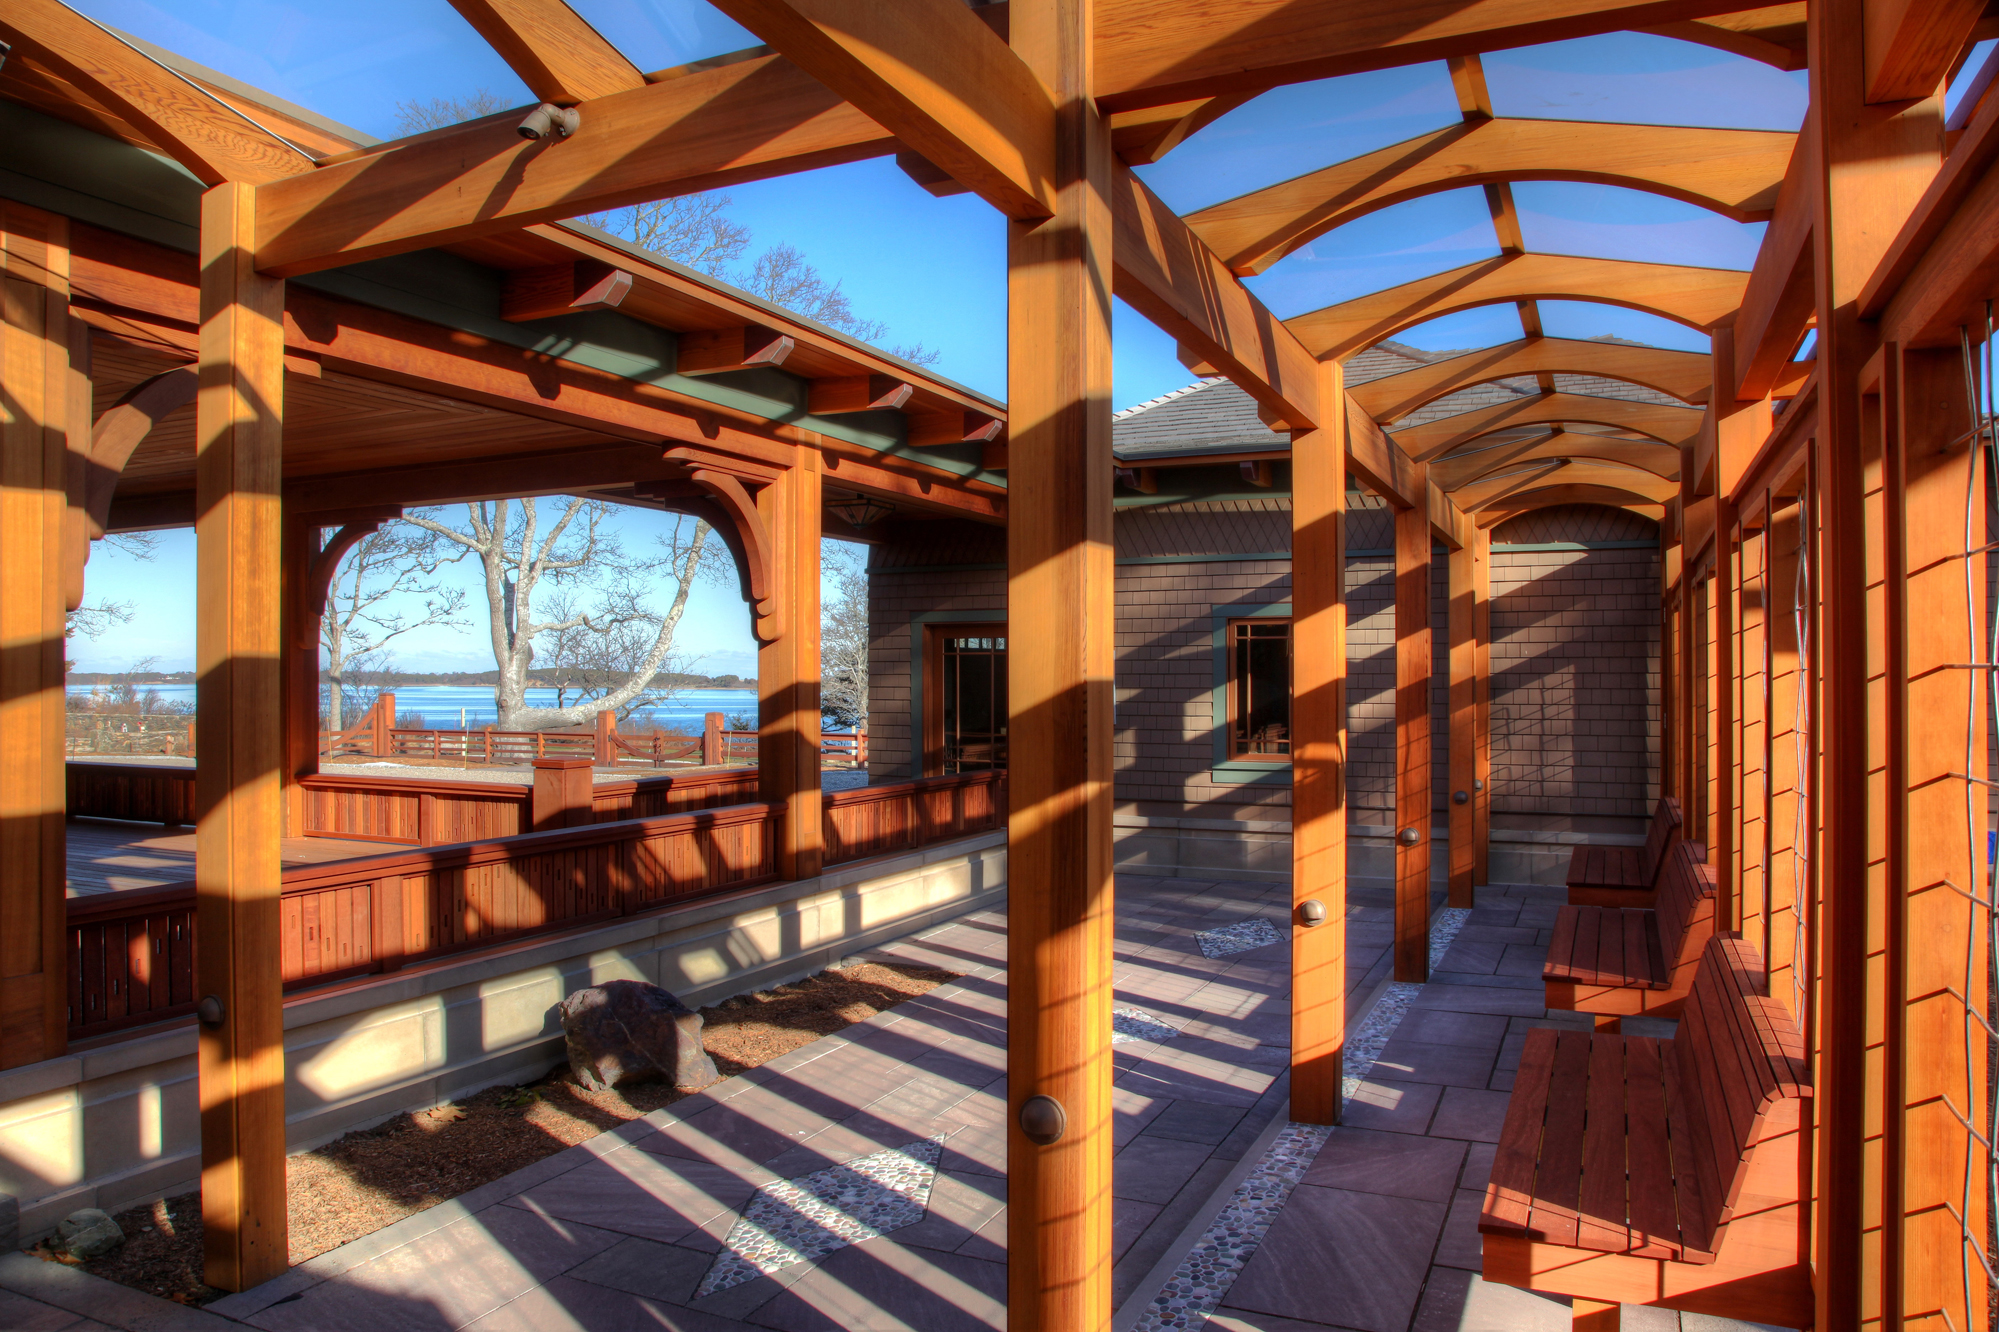 Decorative Beams For A Craftsman Style Arbor Jlc Online